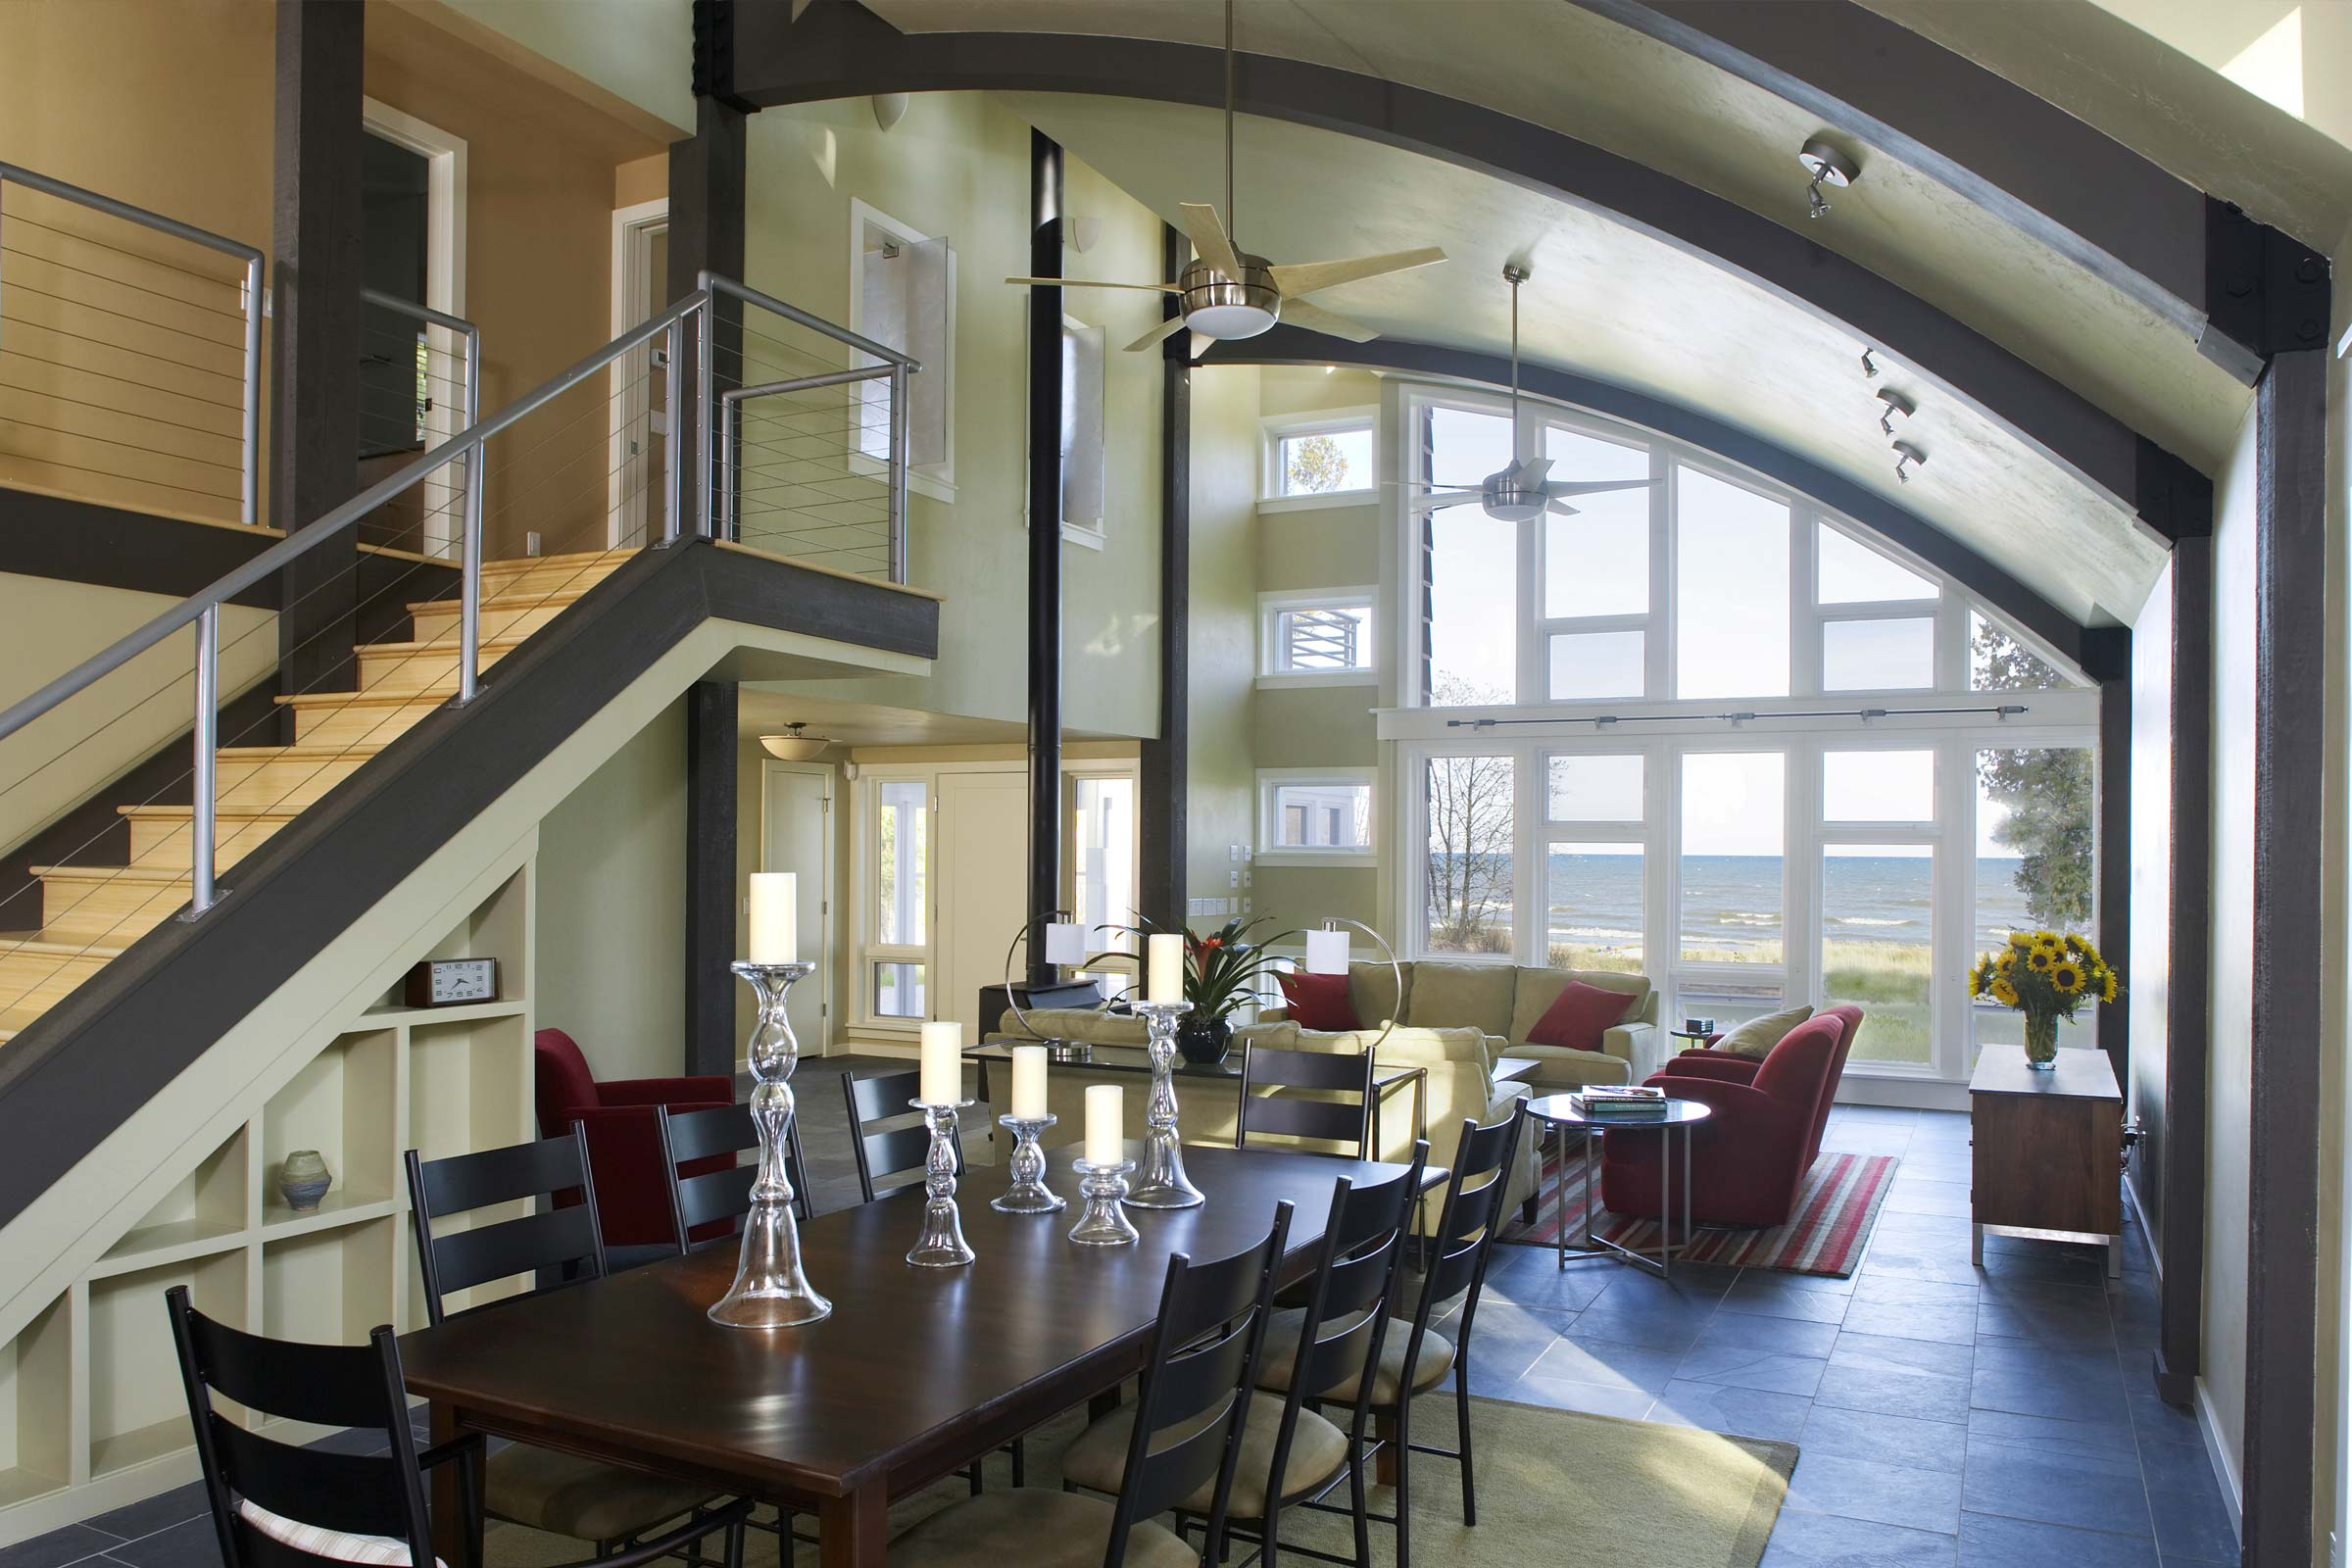 Sturgeon Bay house interior